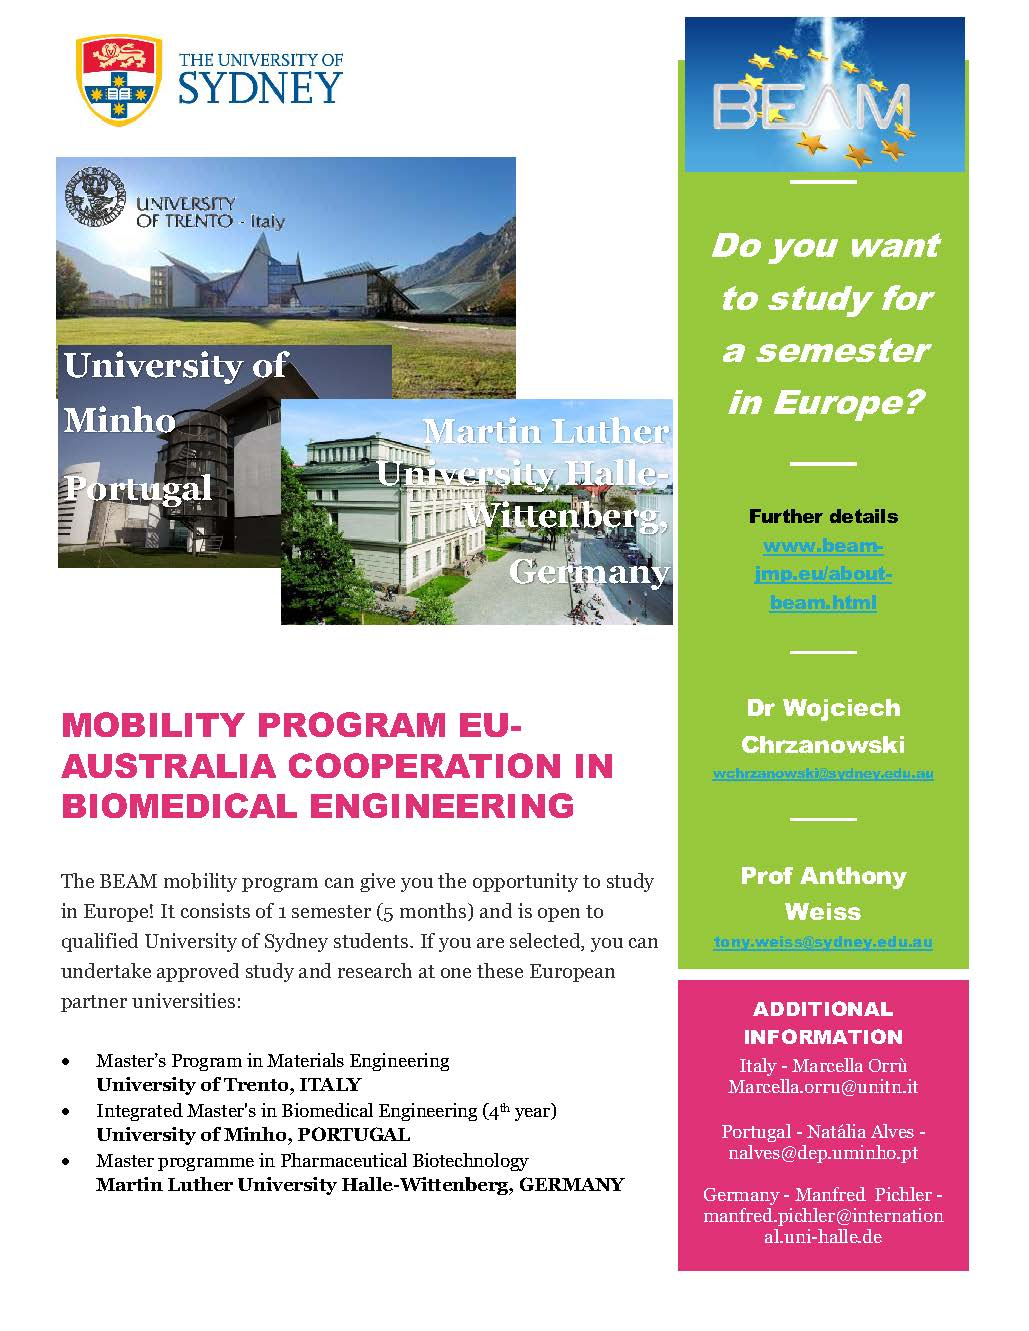 BEAM EU-Australia Biomed Eng